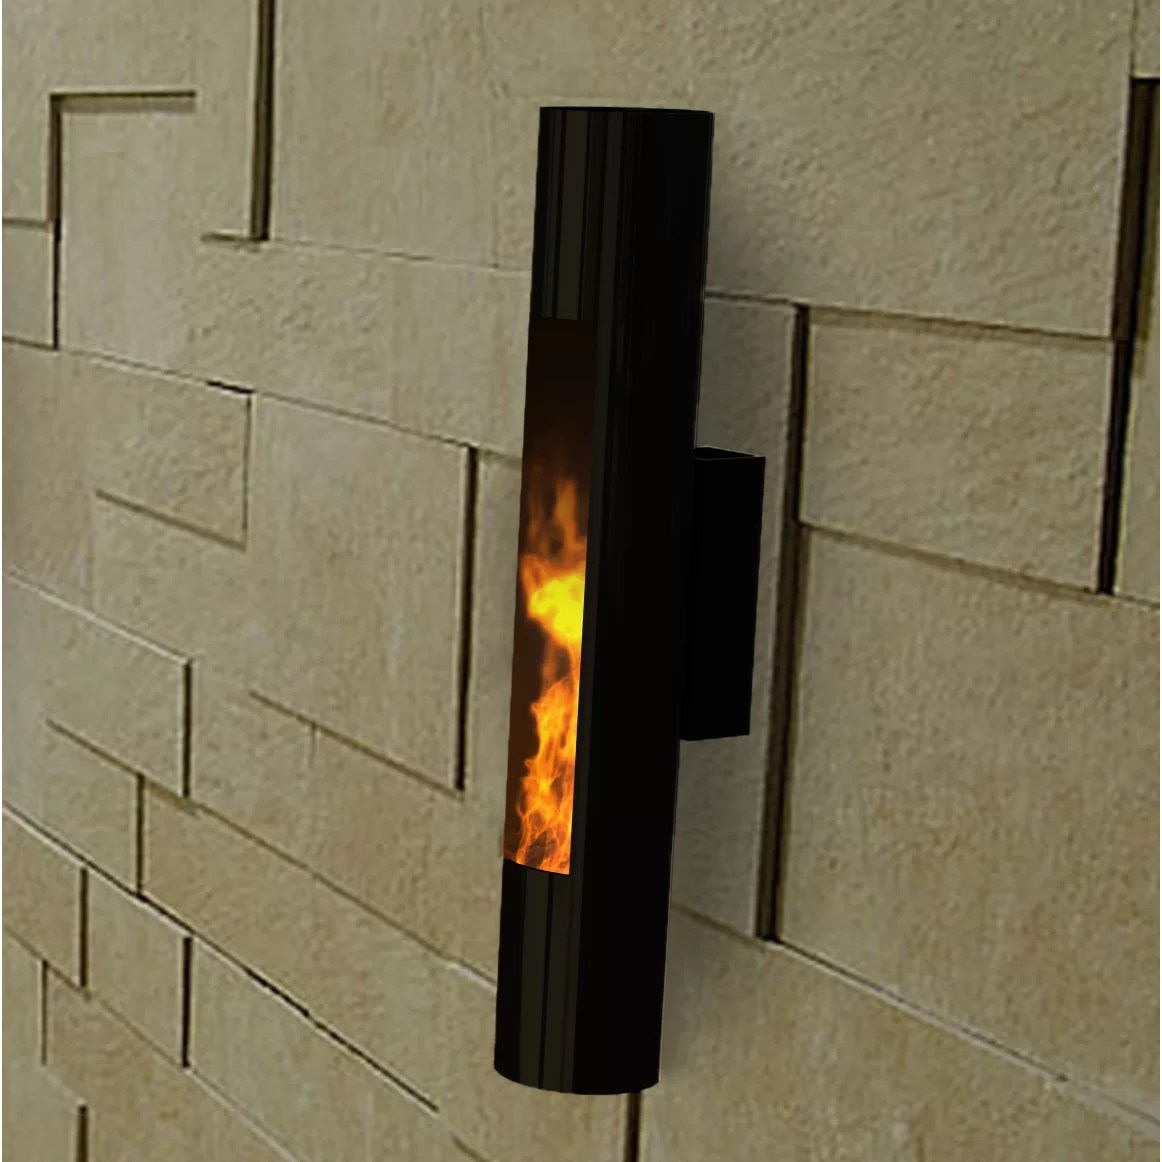 Lumin Sconce Wall Mounted BioEthanol Fireplace  Reviews